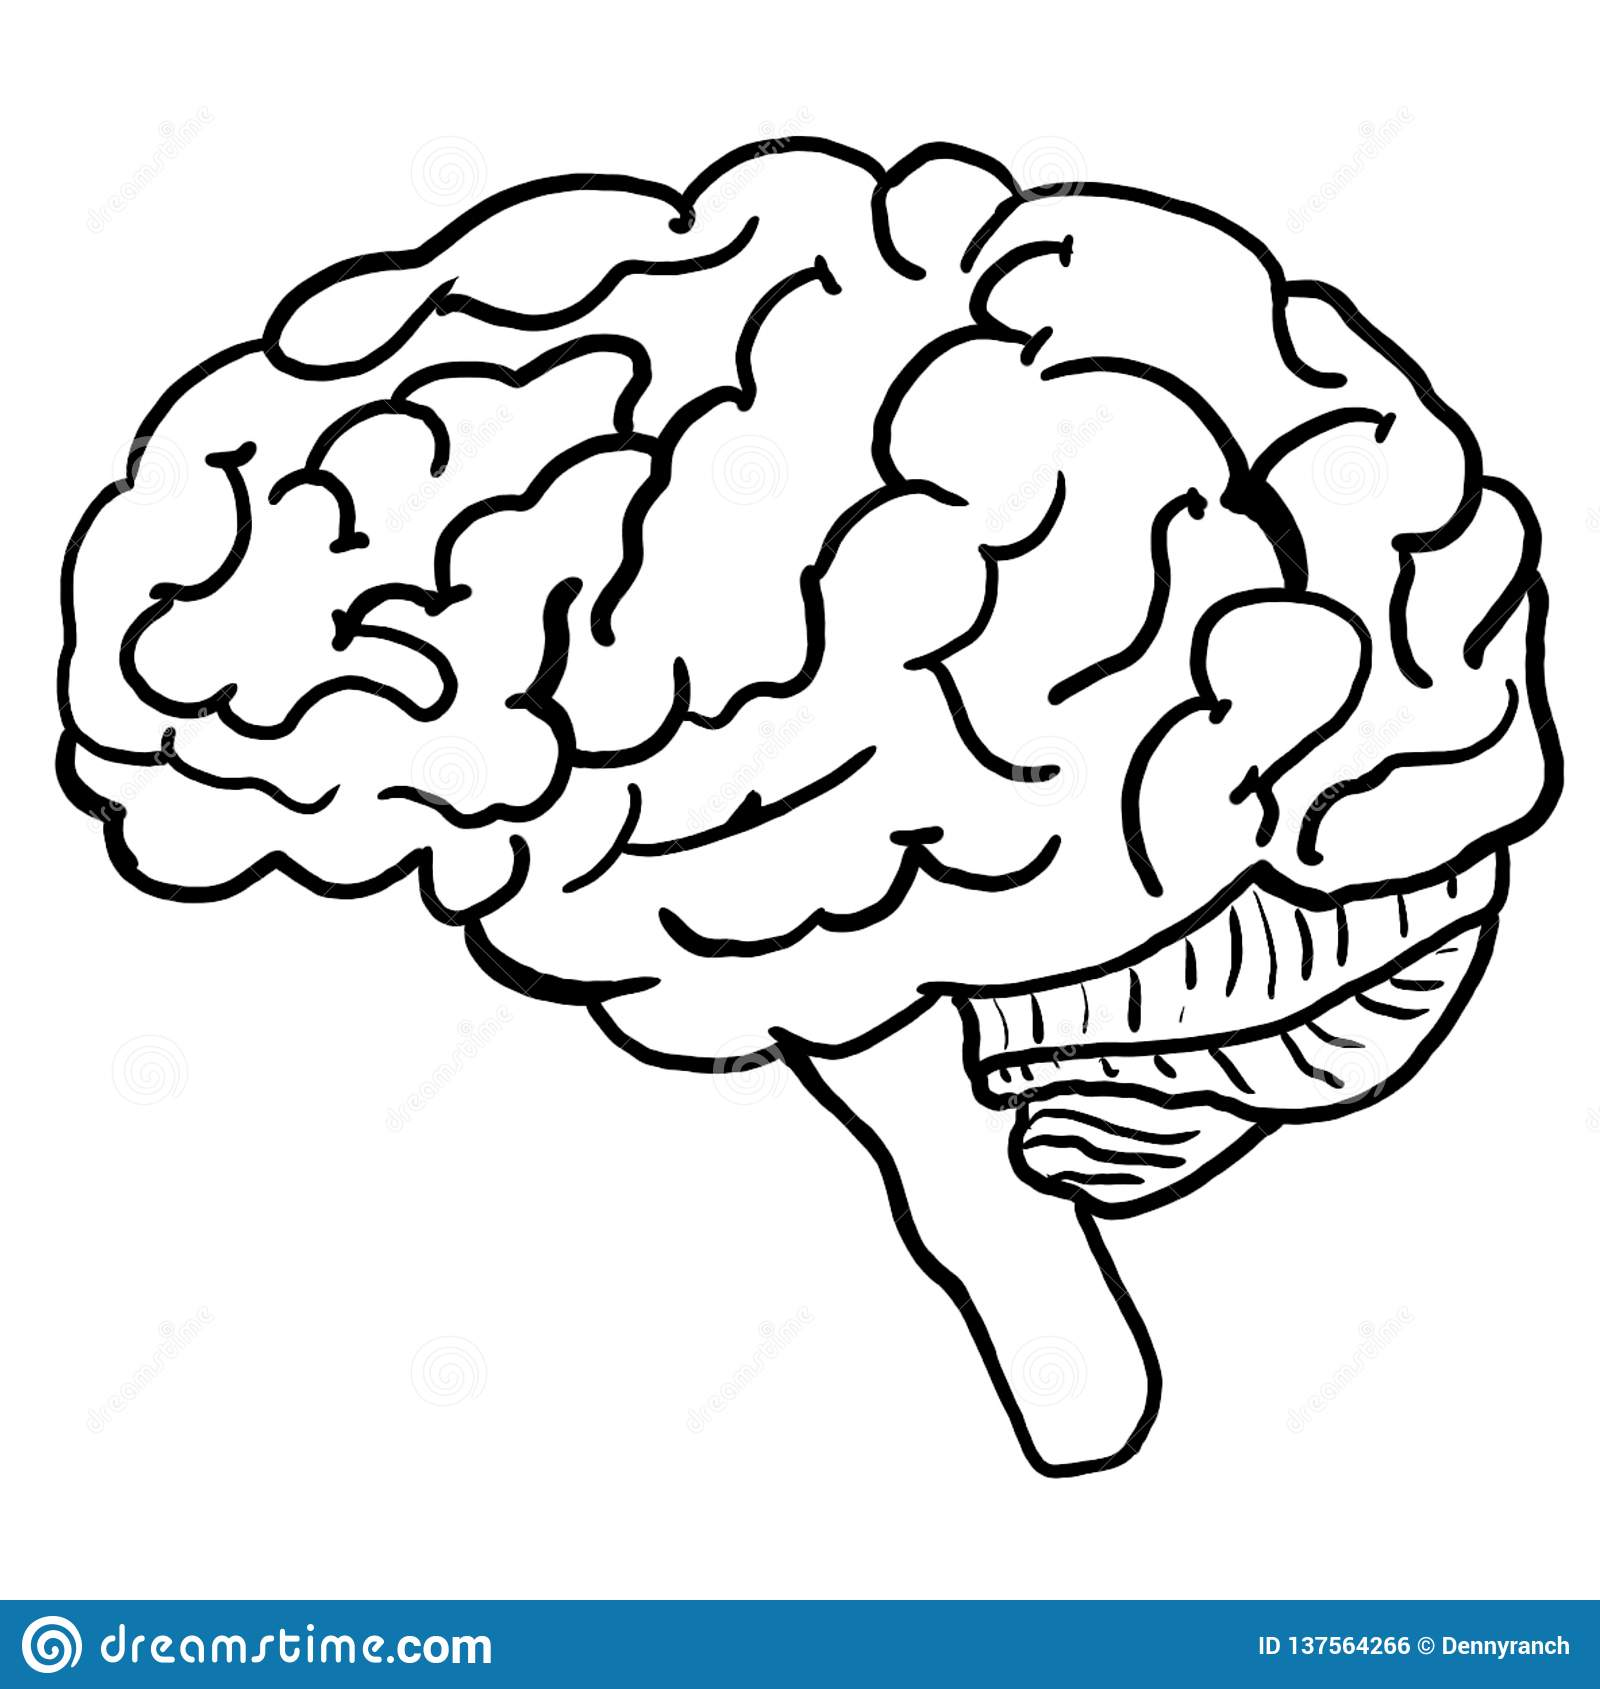 Illustration Of Human Brain Anatomy Coloring Page Stock ...